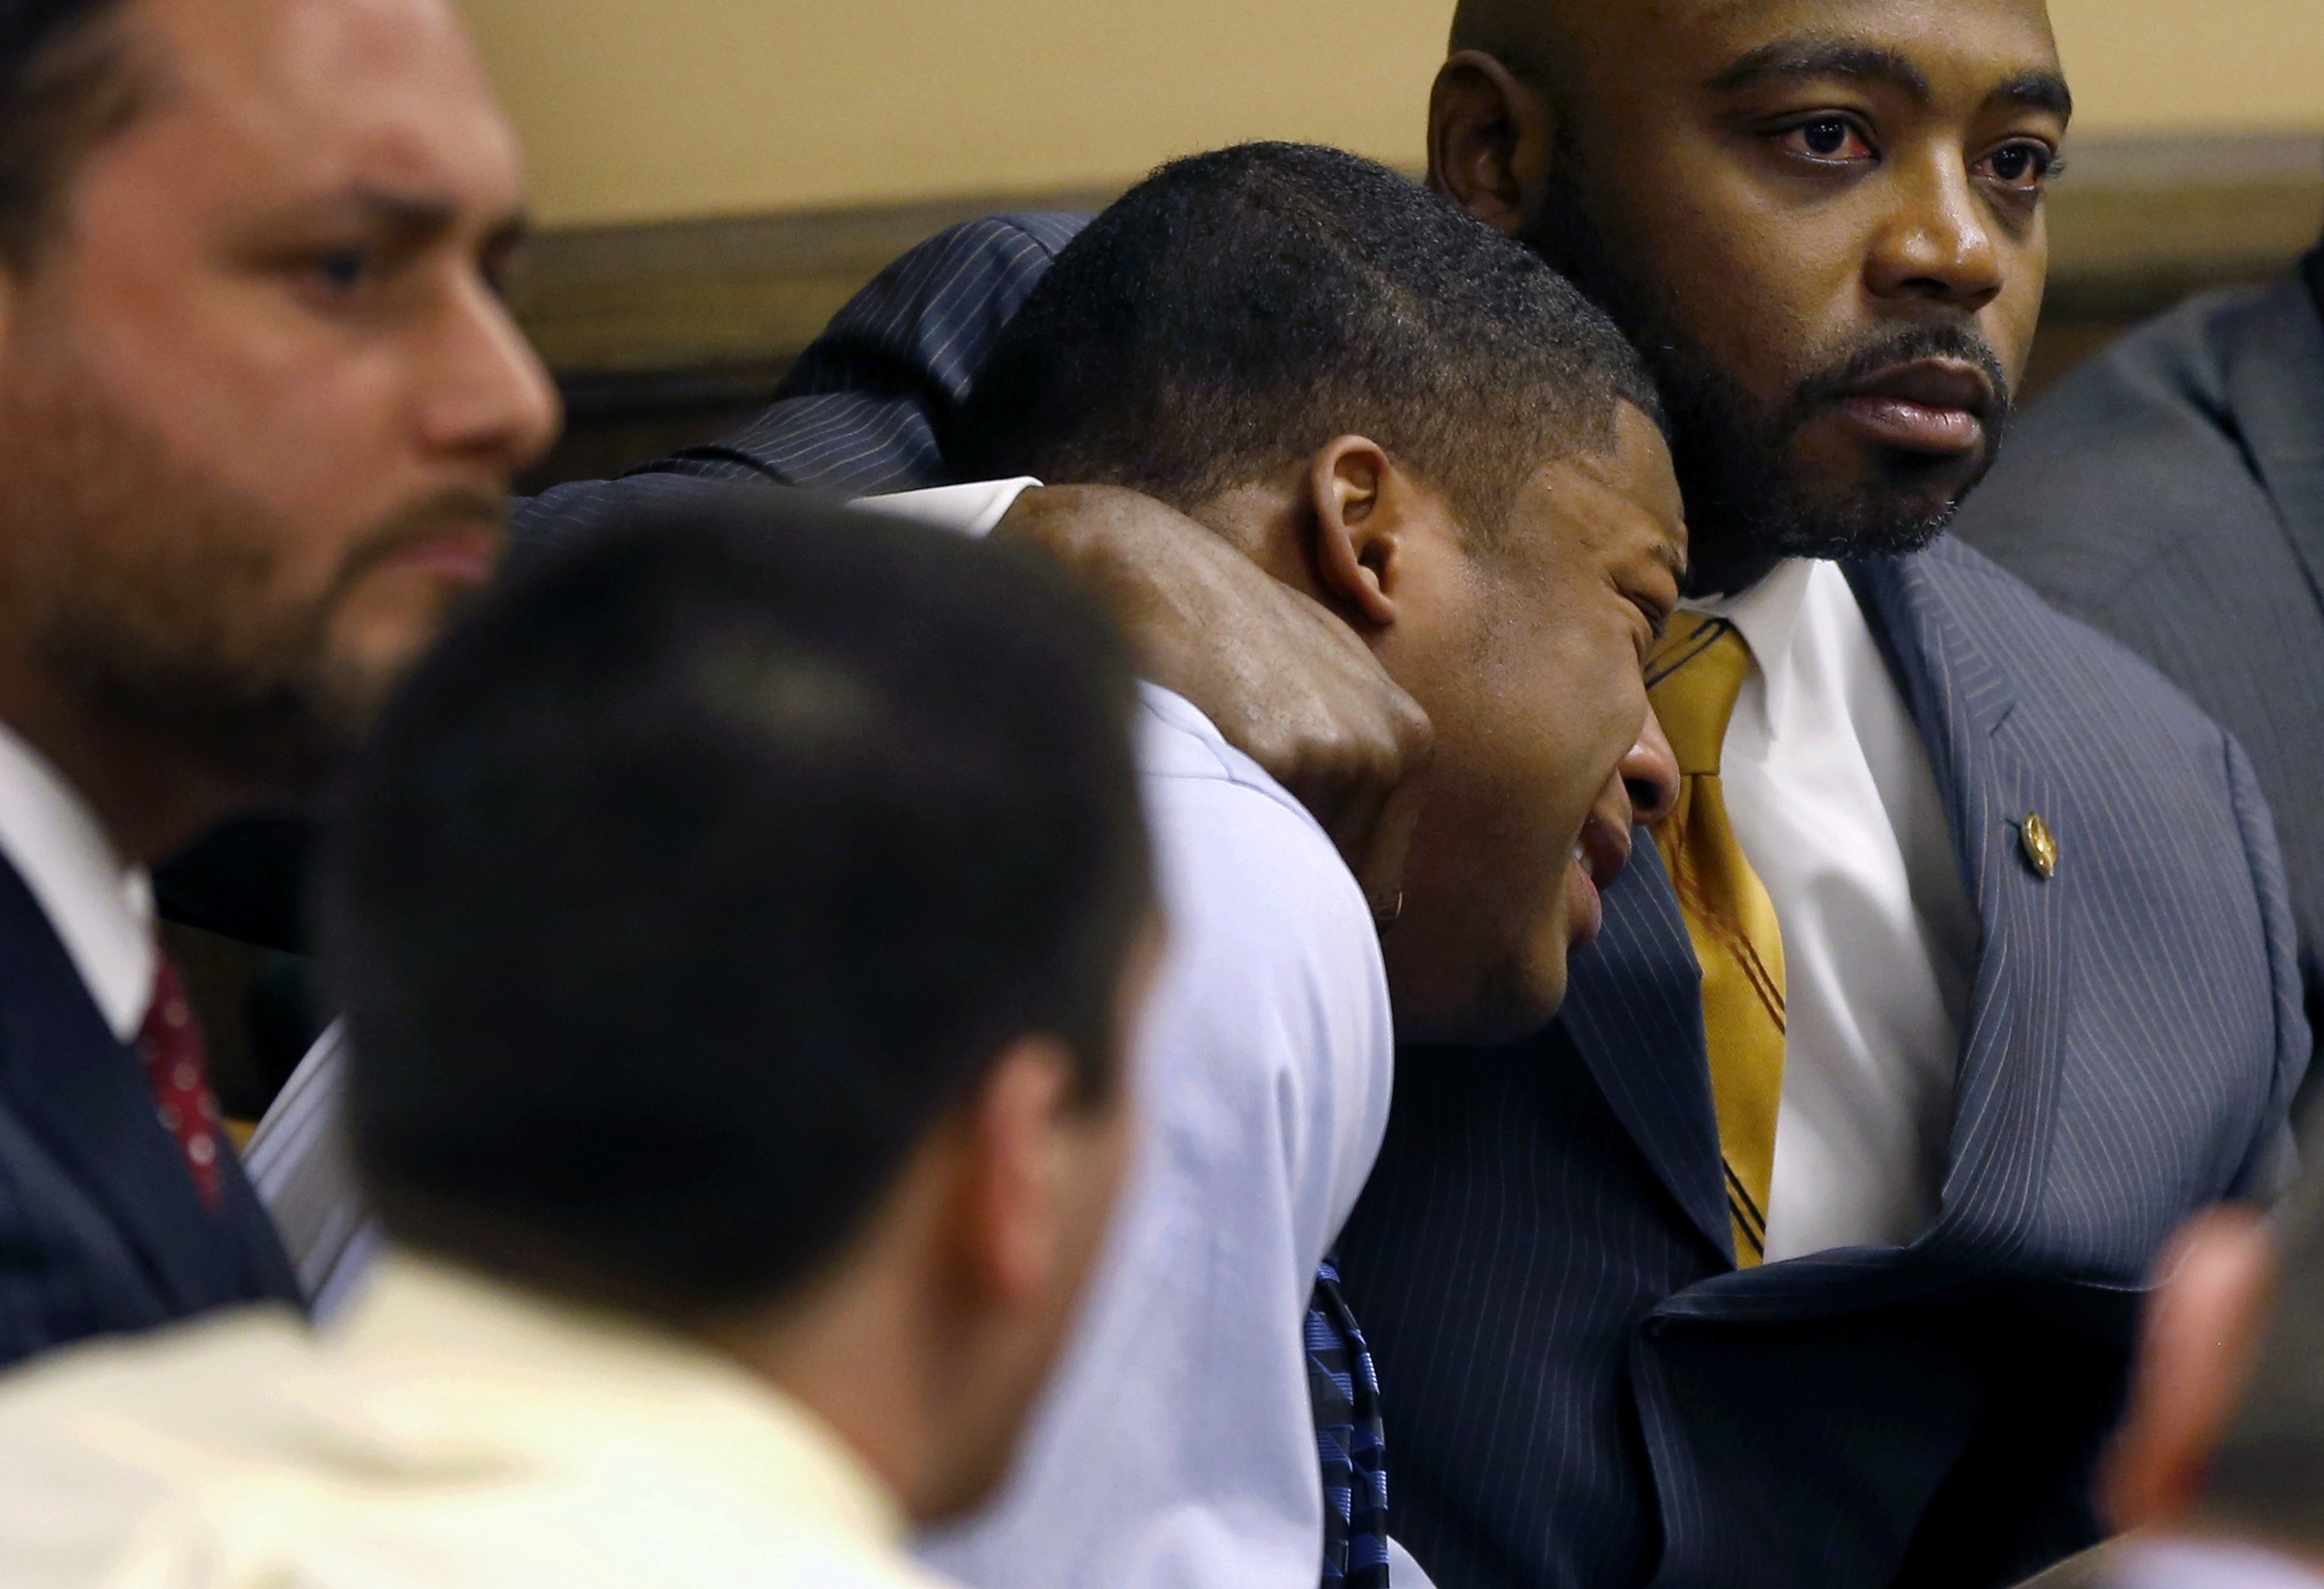 Ma'lik Richmond, center, reacts as the verdict for his and Trent Mays' rape trial is delivered. (Reuters)